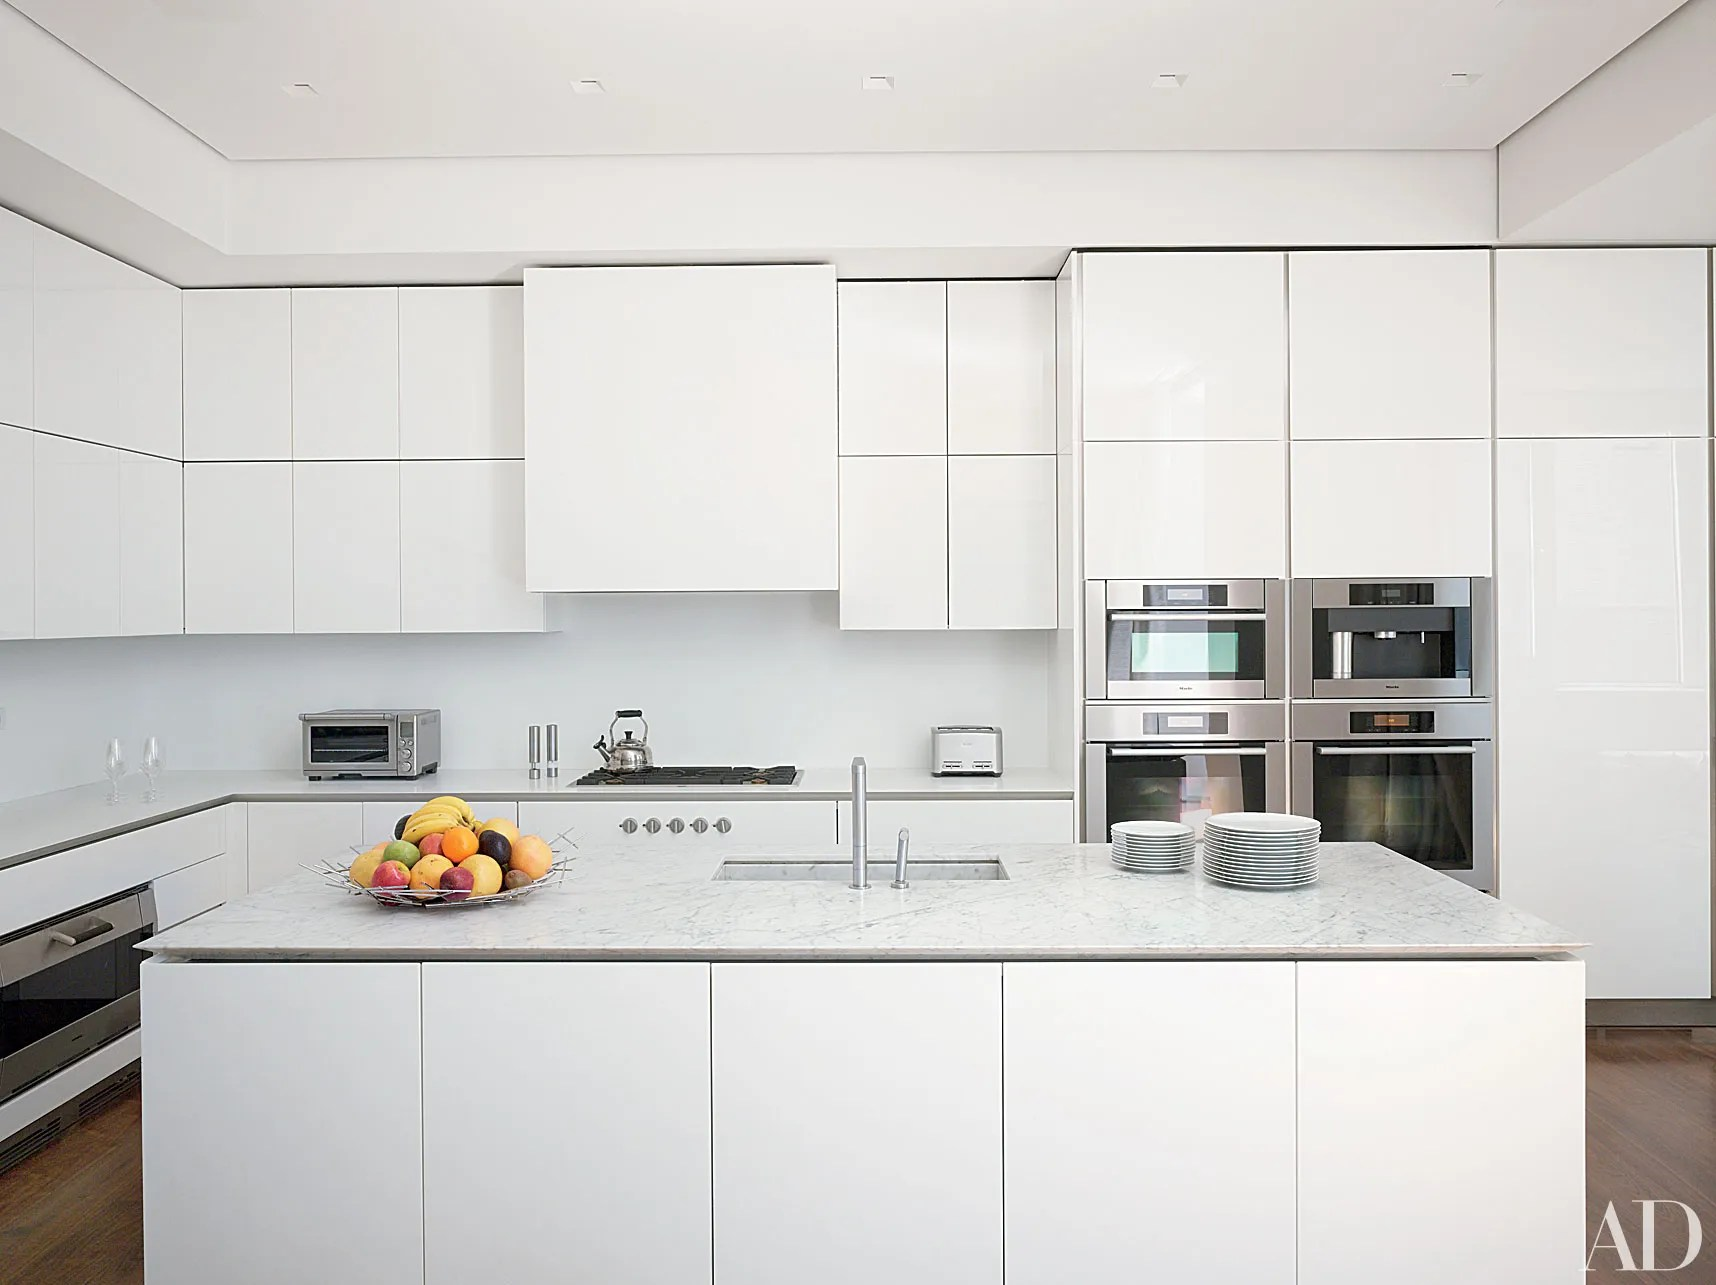 Ikea Küchen Check Check Out These 11 Stunning Minimalist Kitchens From The